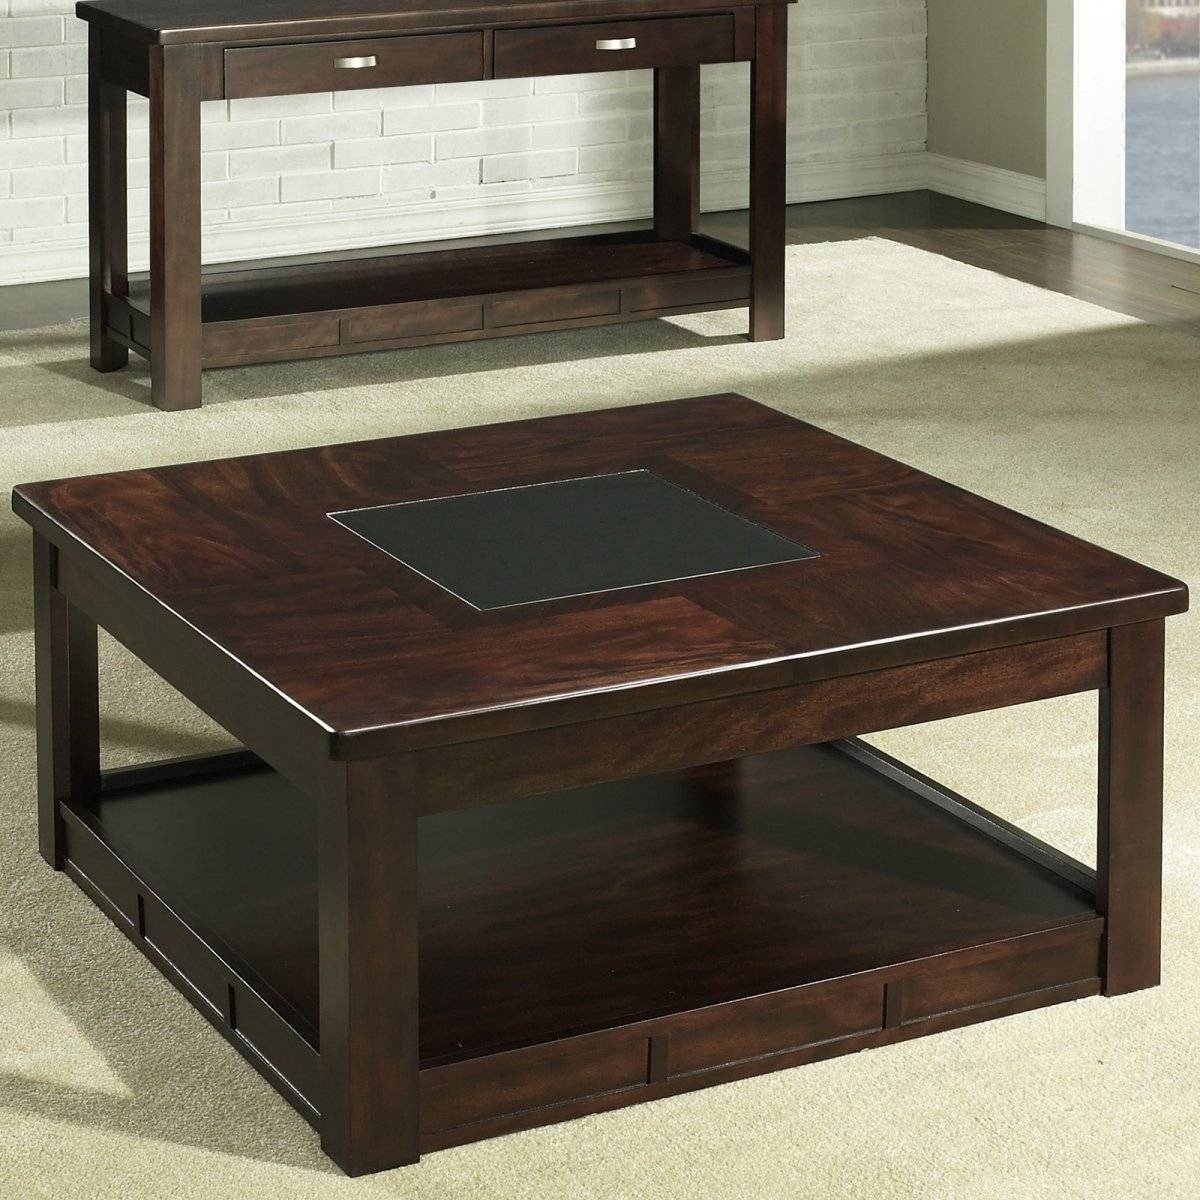 Square Wood Coffee Table With Drawers And Glass Top - Jericho pertaining to Square Large Coffee Tables (Image 28 of 30)